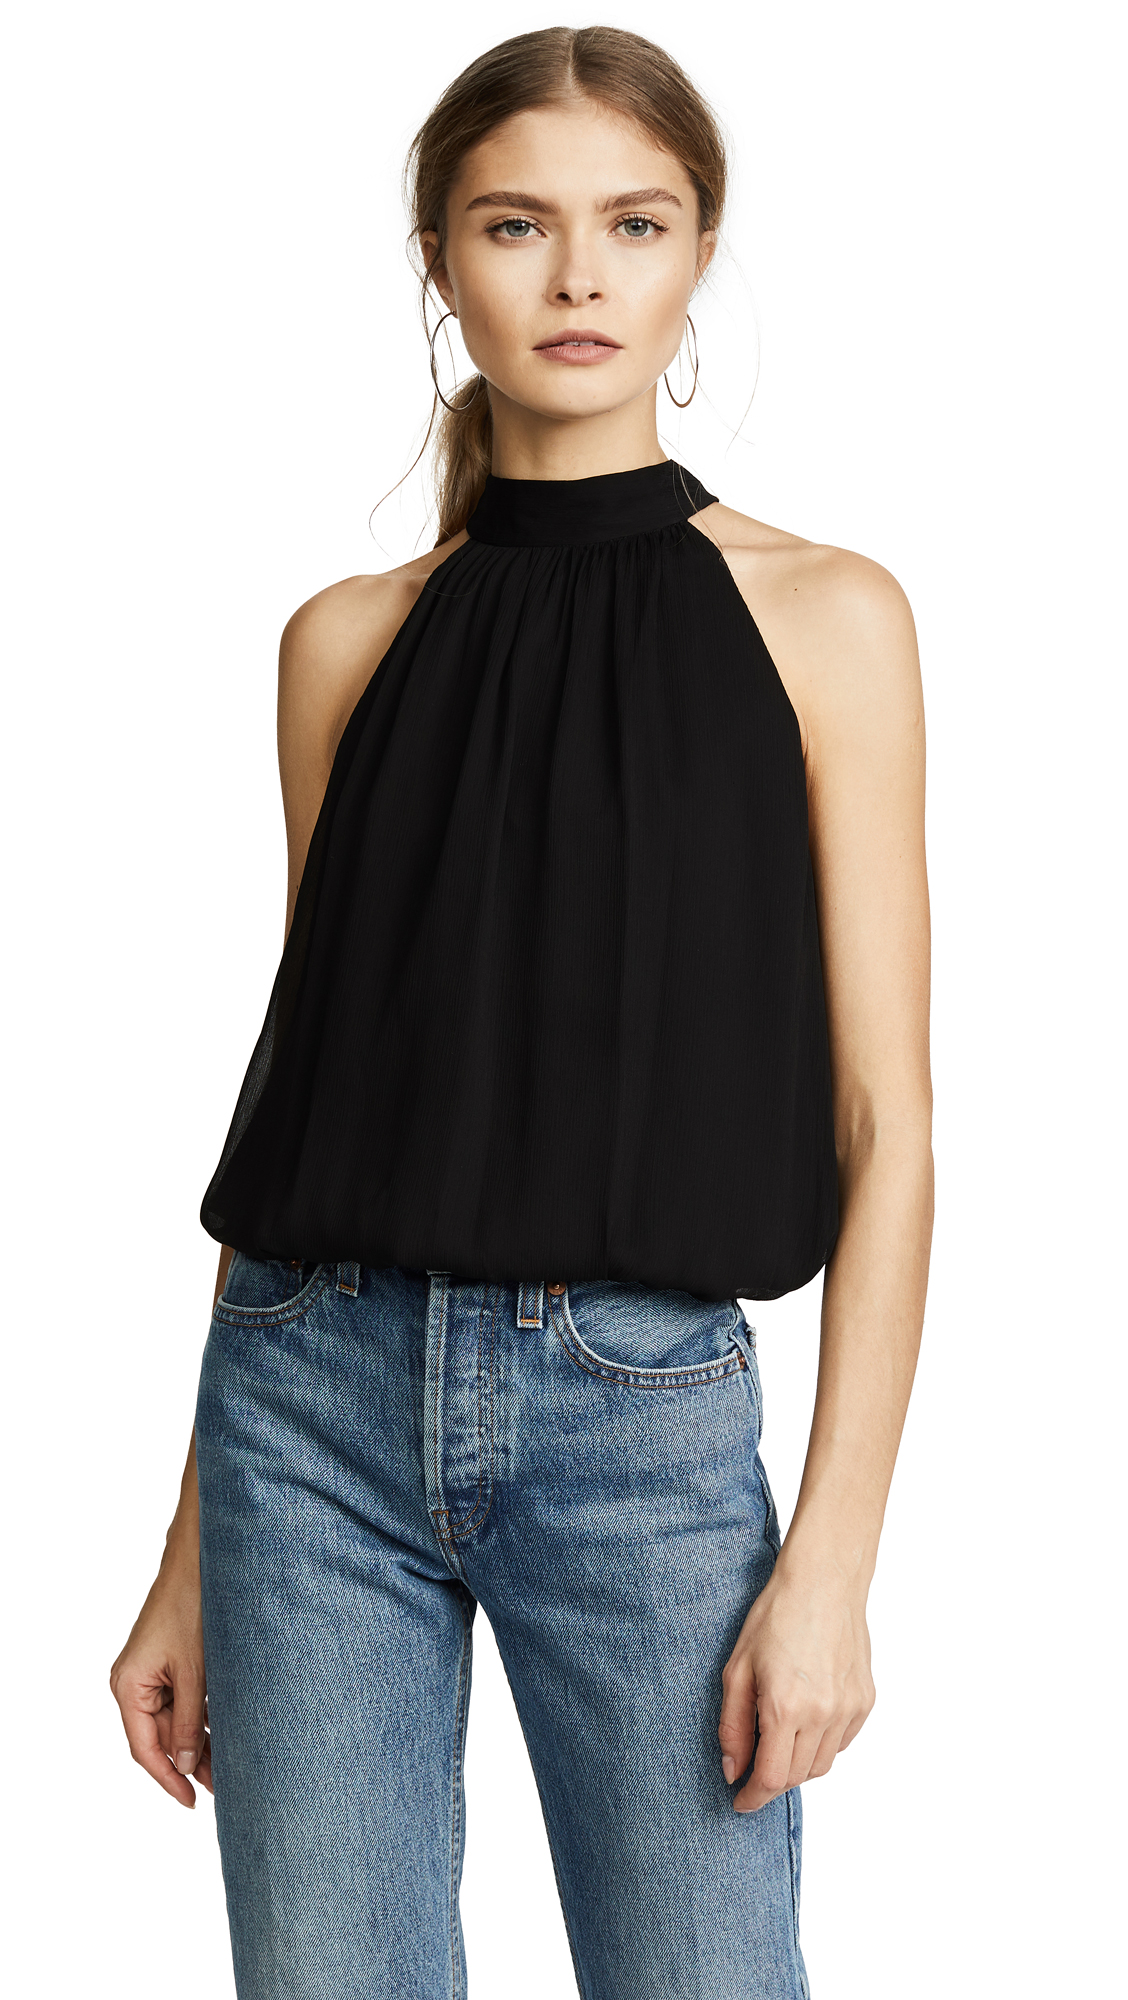 alice + olivia Maris Gathered Halter Top - Black